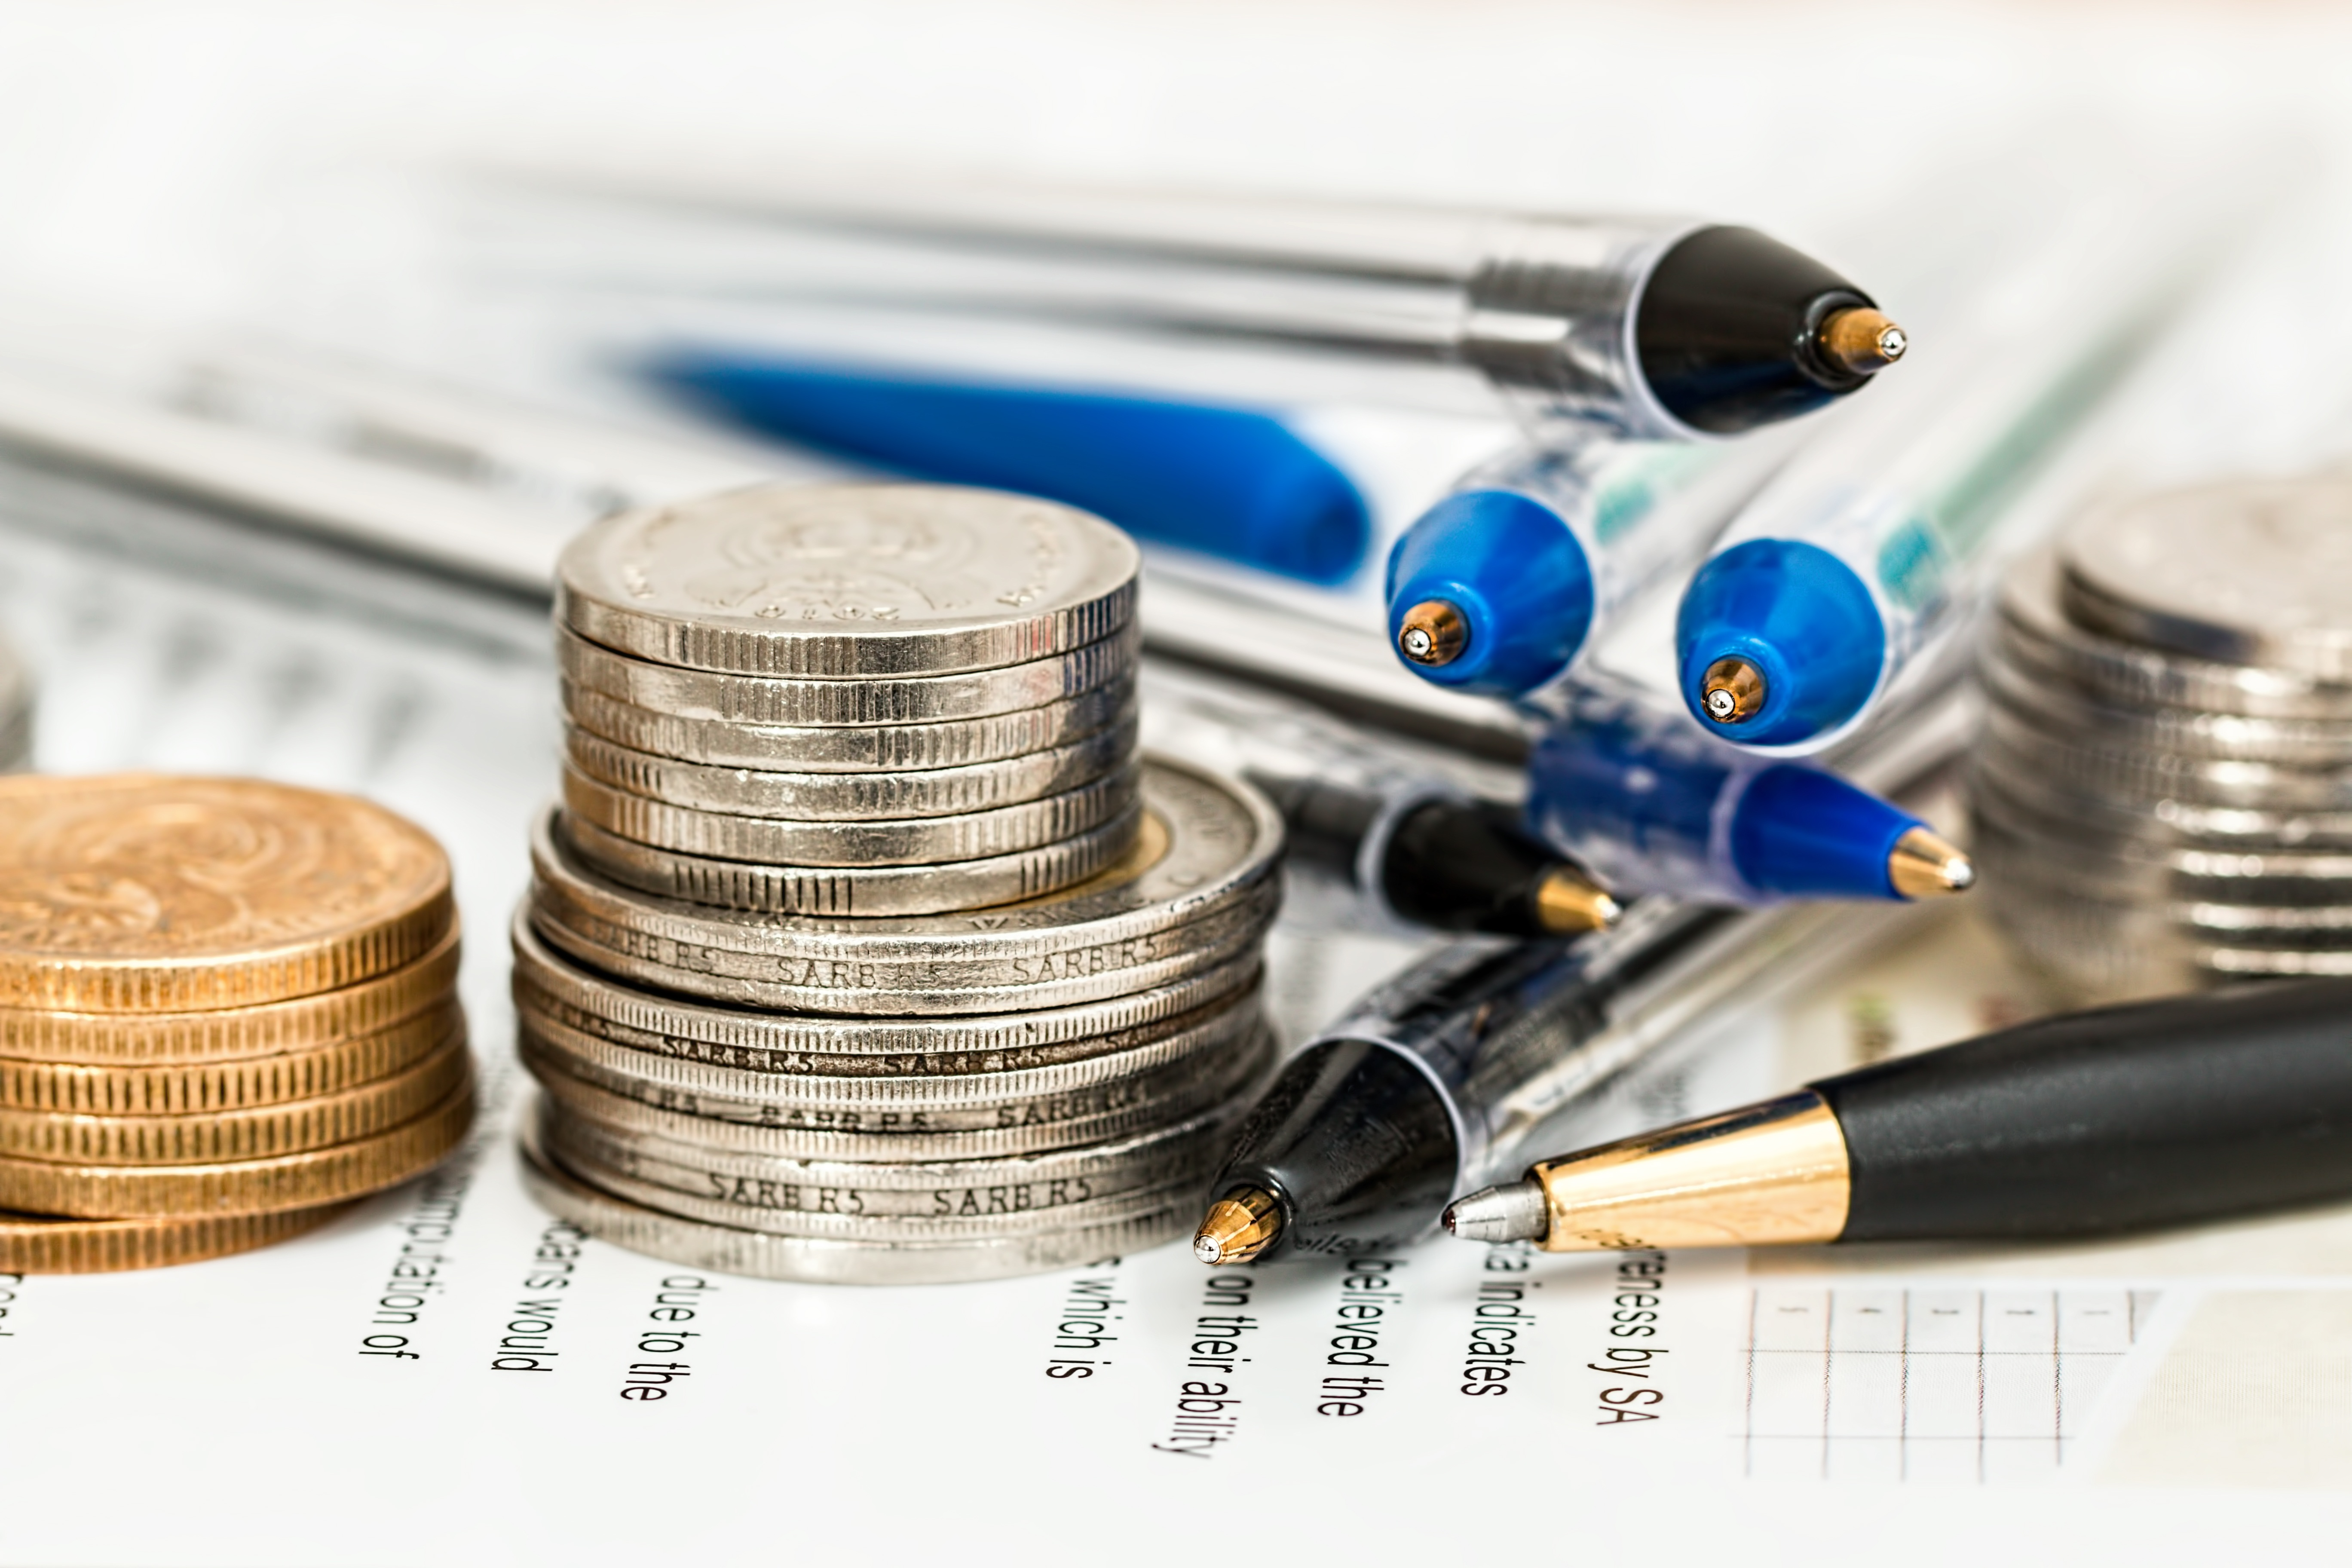 What are the Major Benefits of the Accounting?